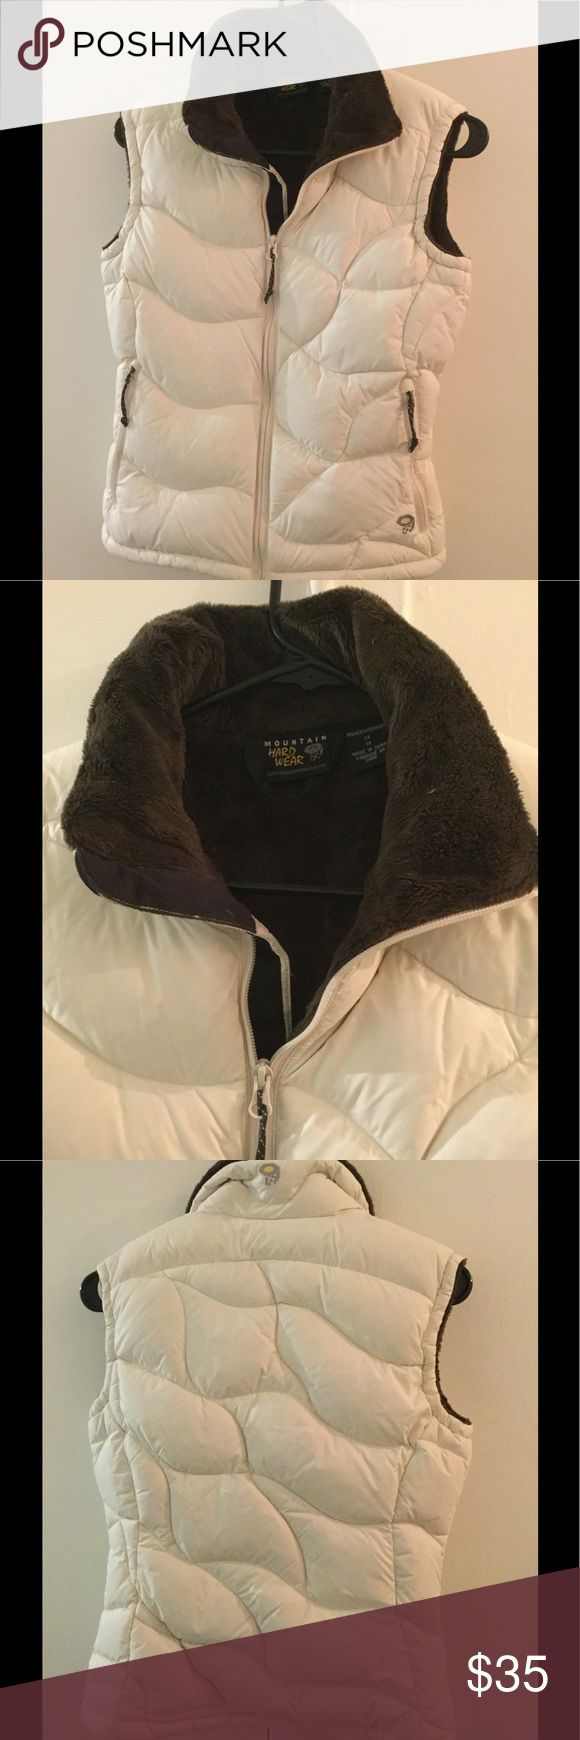 Mountain Hardware Puffer Vest Mountain Hardware Puffer Vest. Gently used, no stains or damage. Ivory colored shell and deep brown faux fur lining. Perfect for early Fall. Mountain Hardwear Jackets & Coats Vests